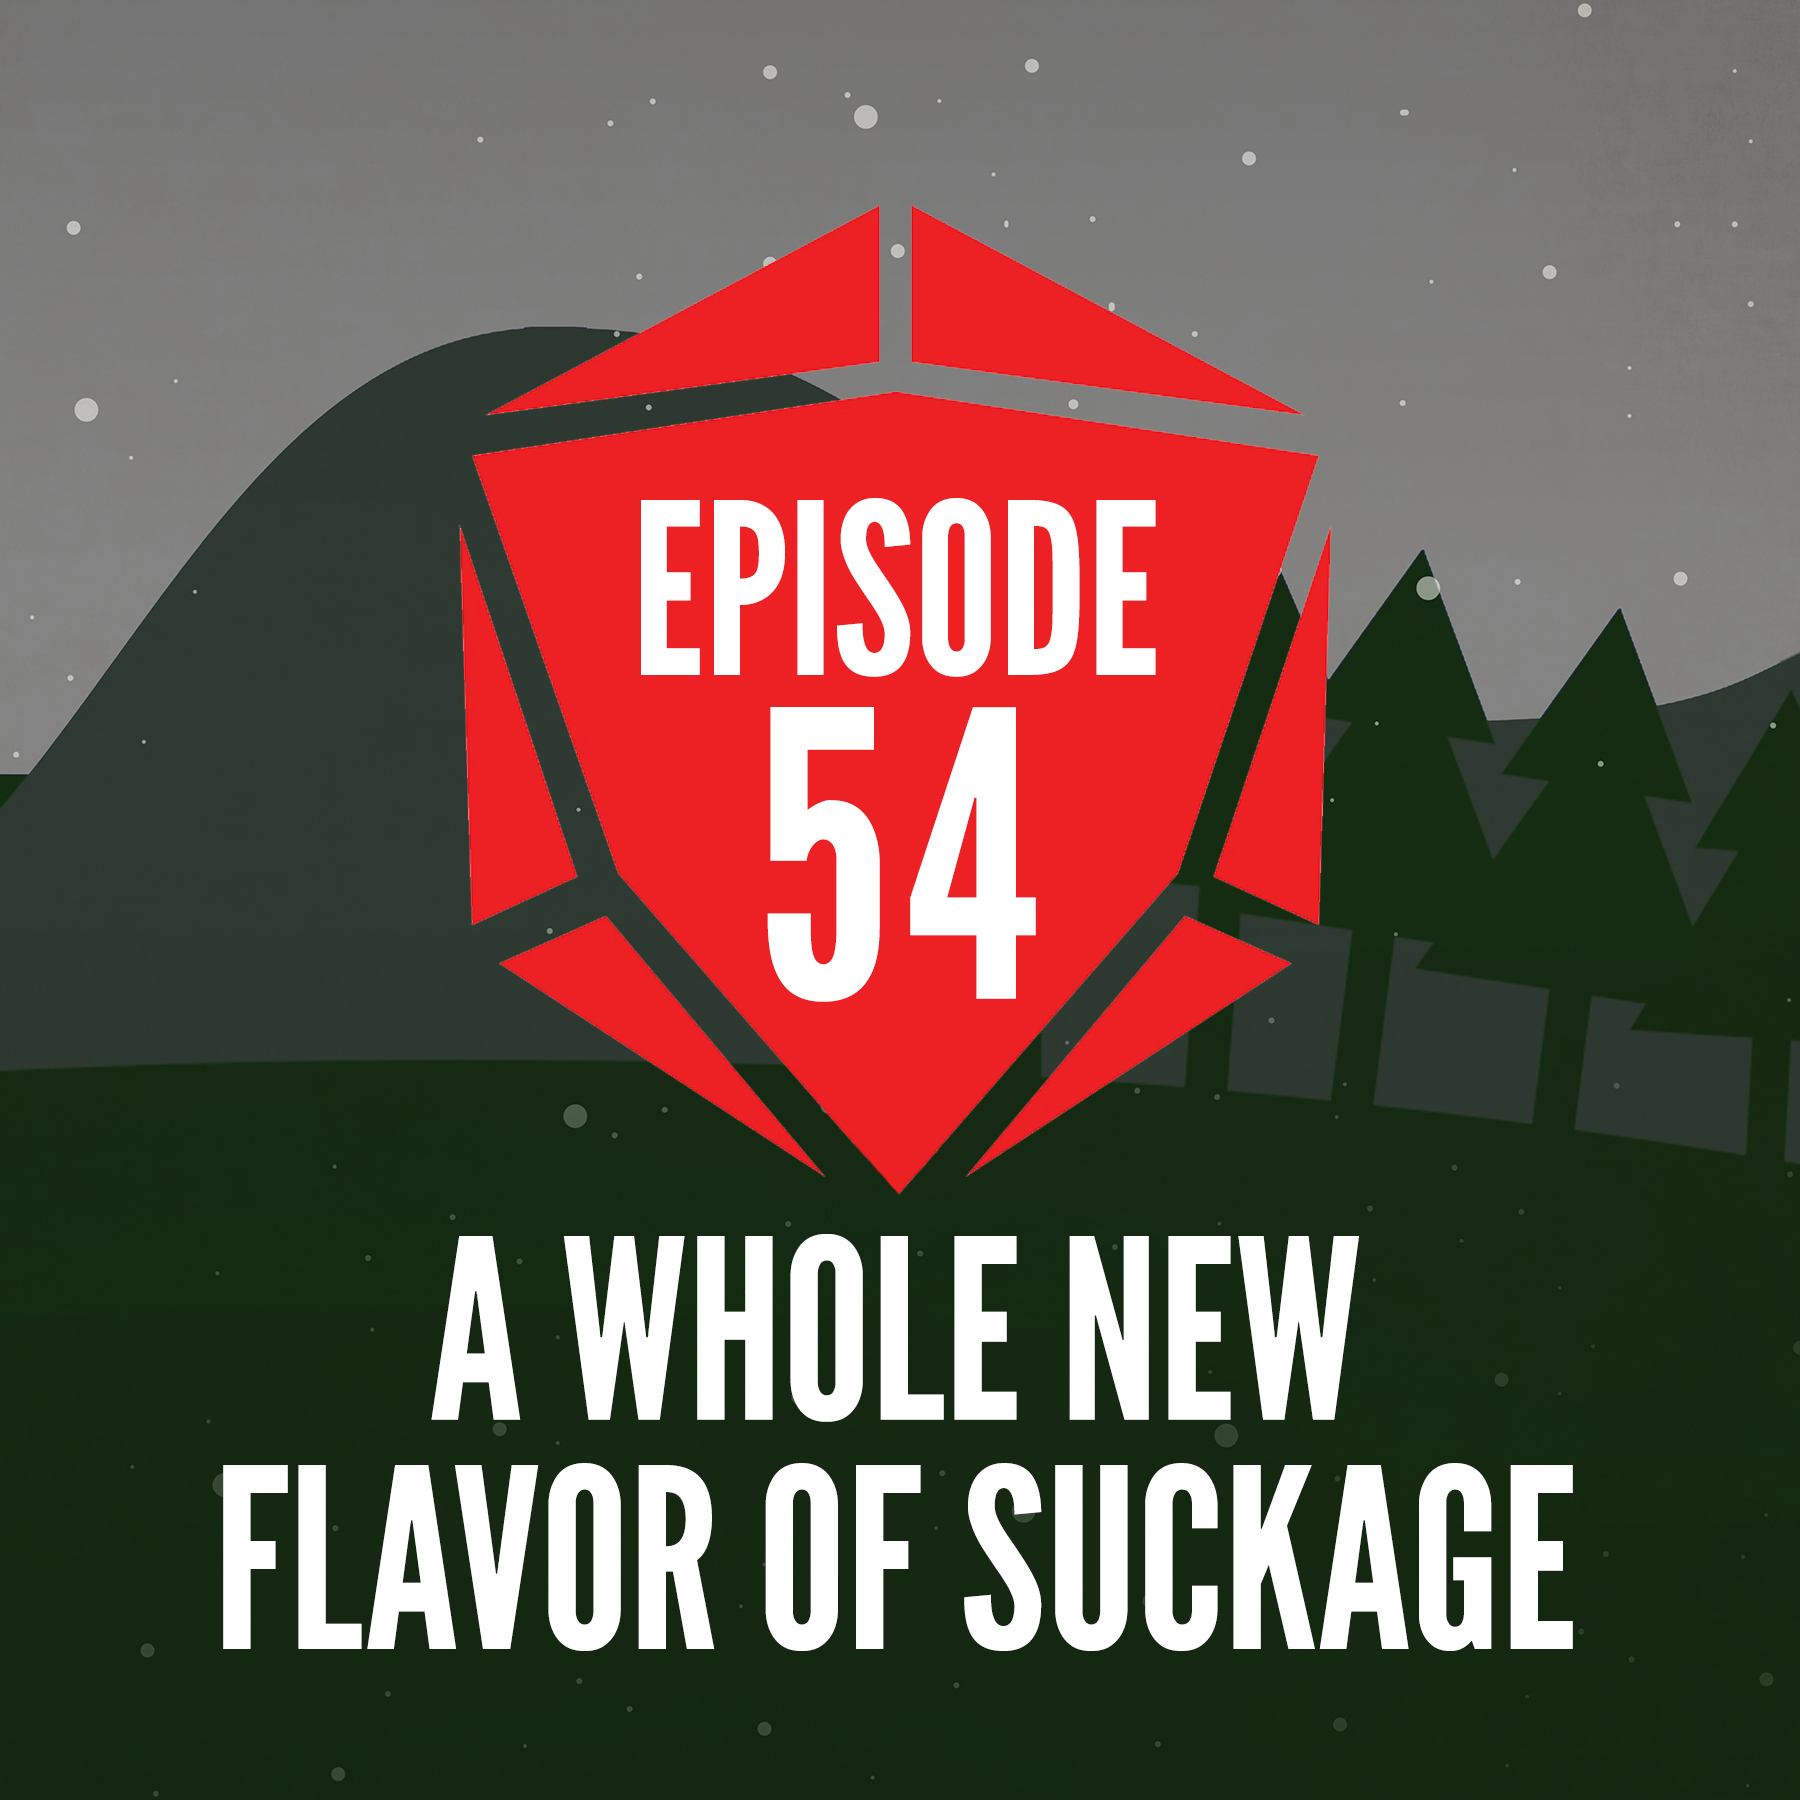 Episode 54: A Whole New Flavor of Suckage